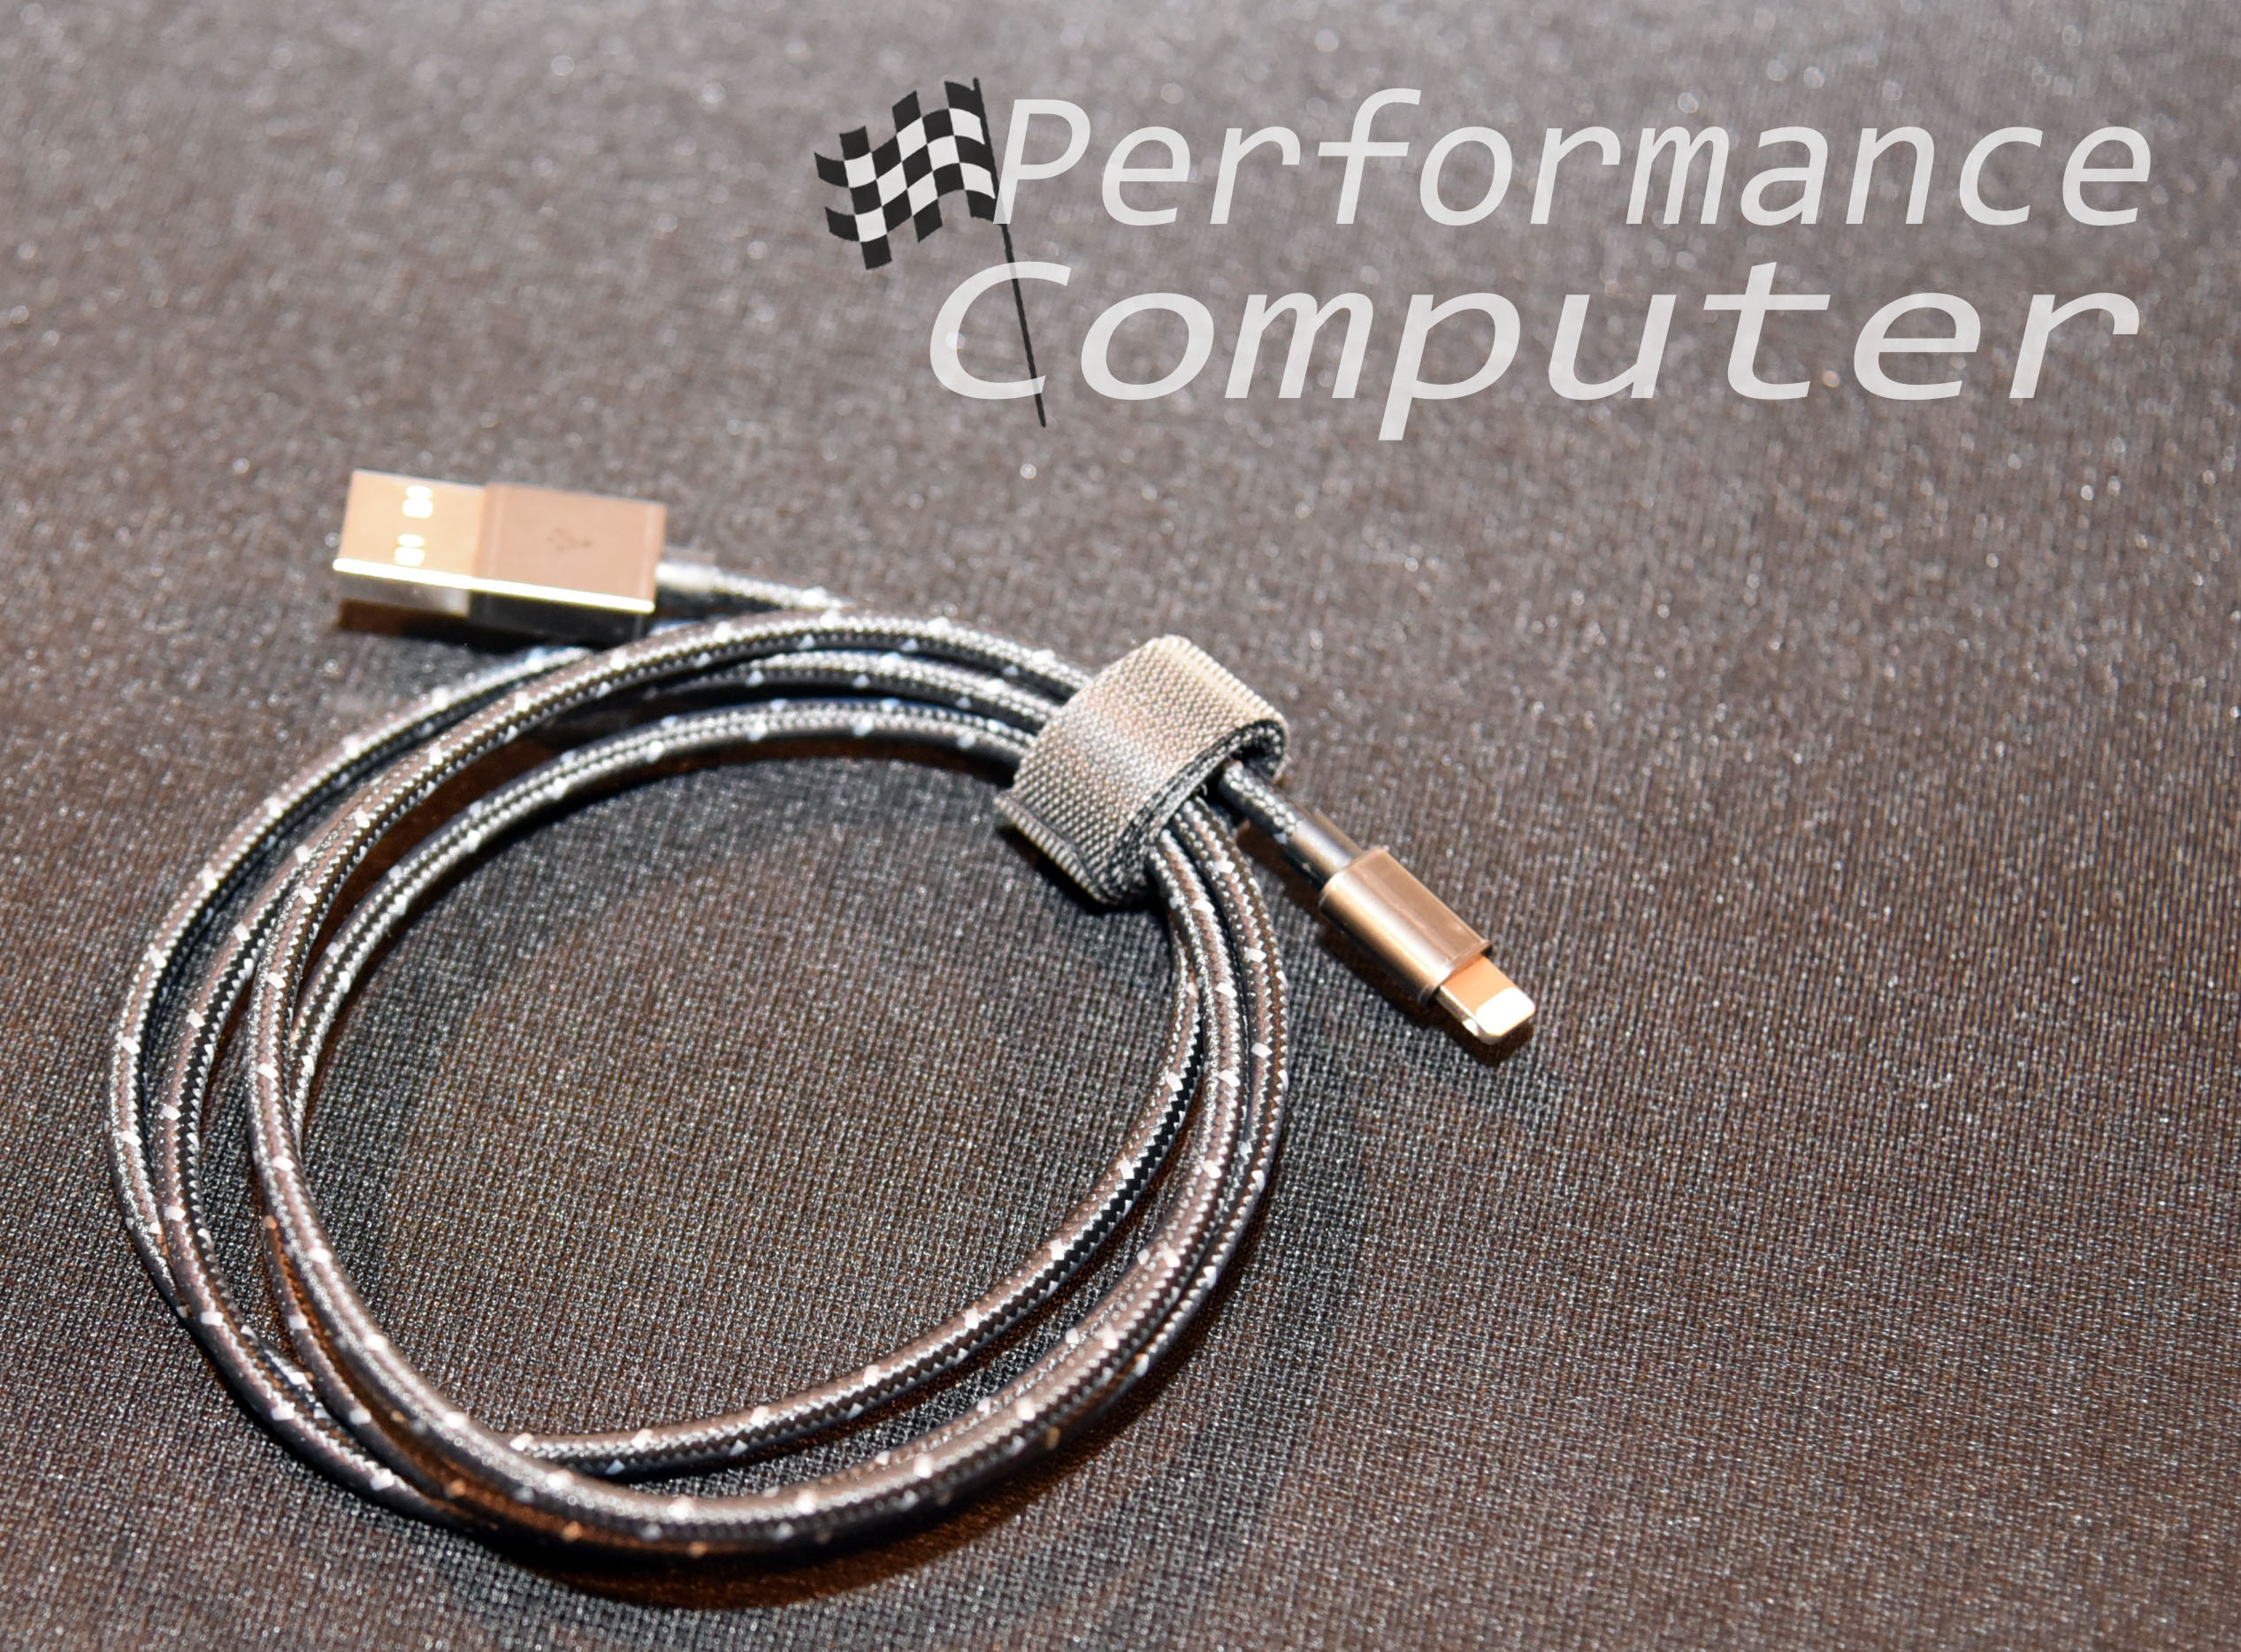 rhinoshield braided lightning usb cable review